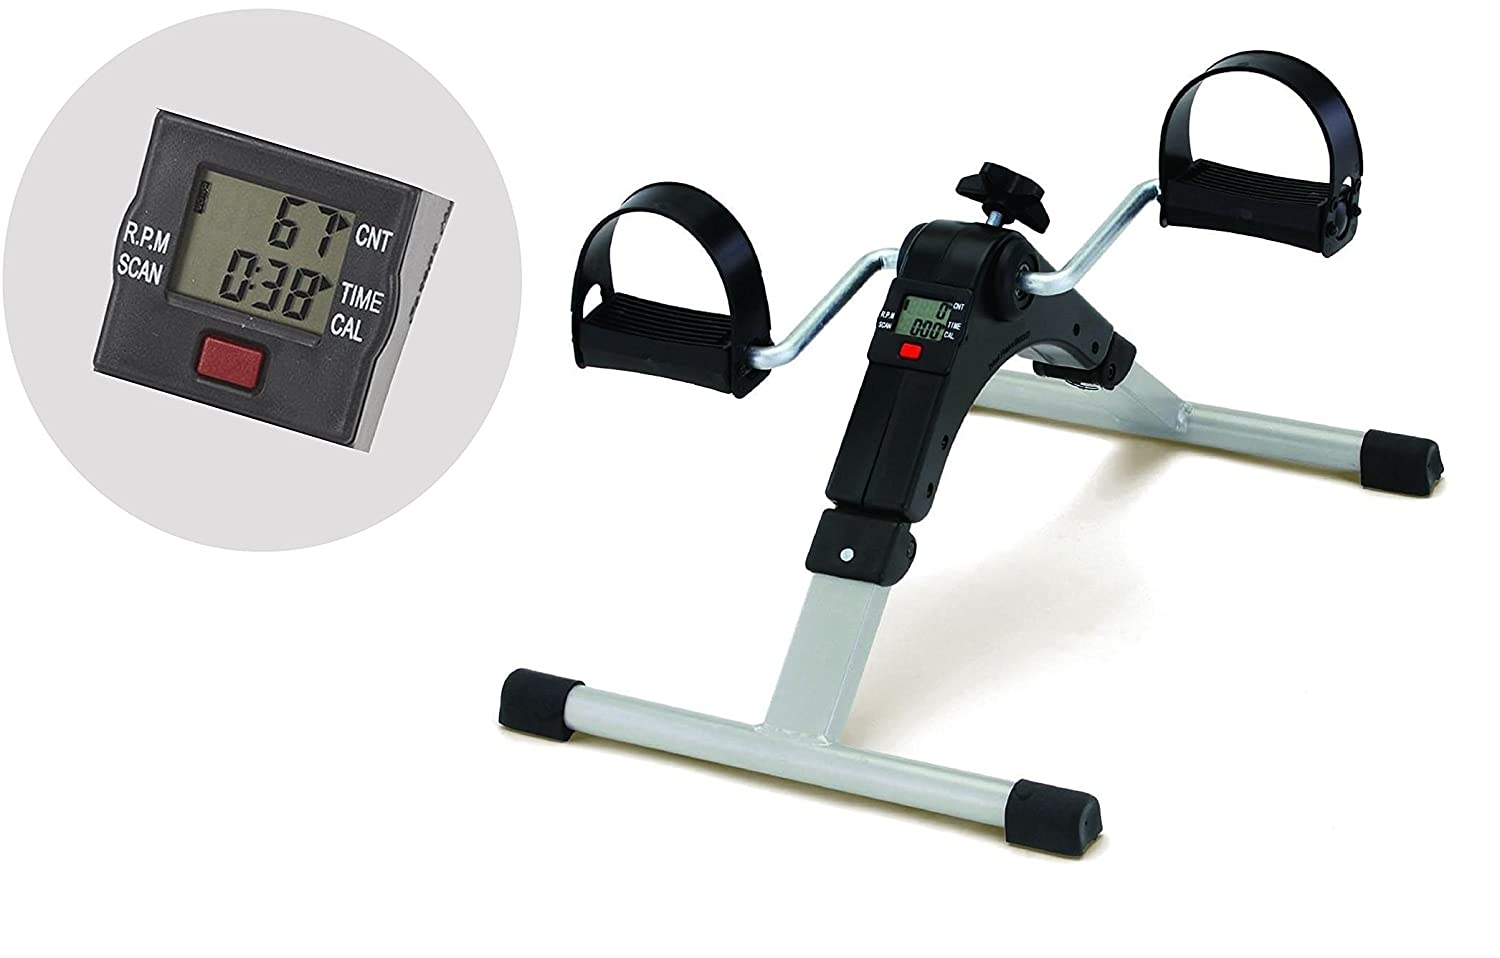 Inditradition Mini Pedal Exercise Cycle/Bike